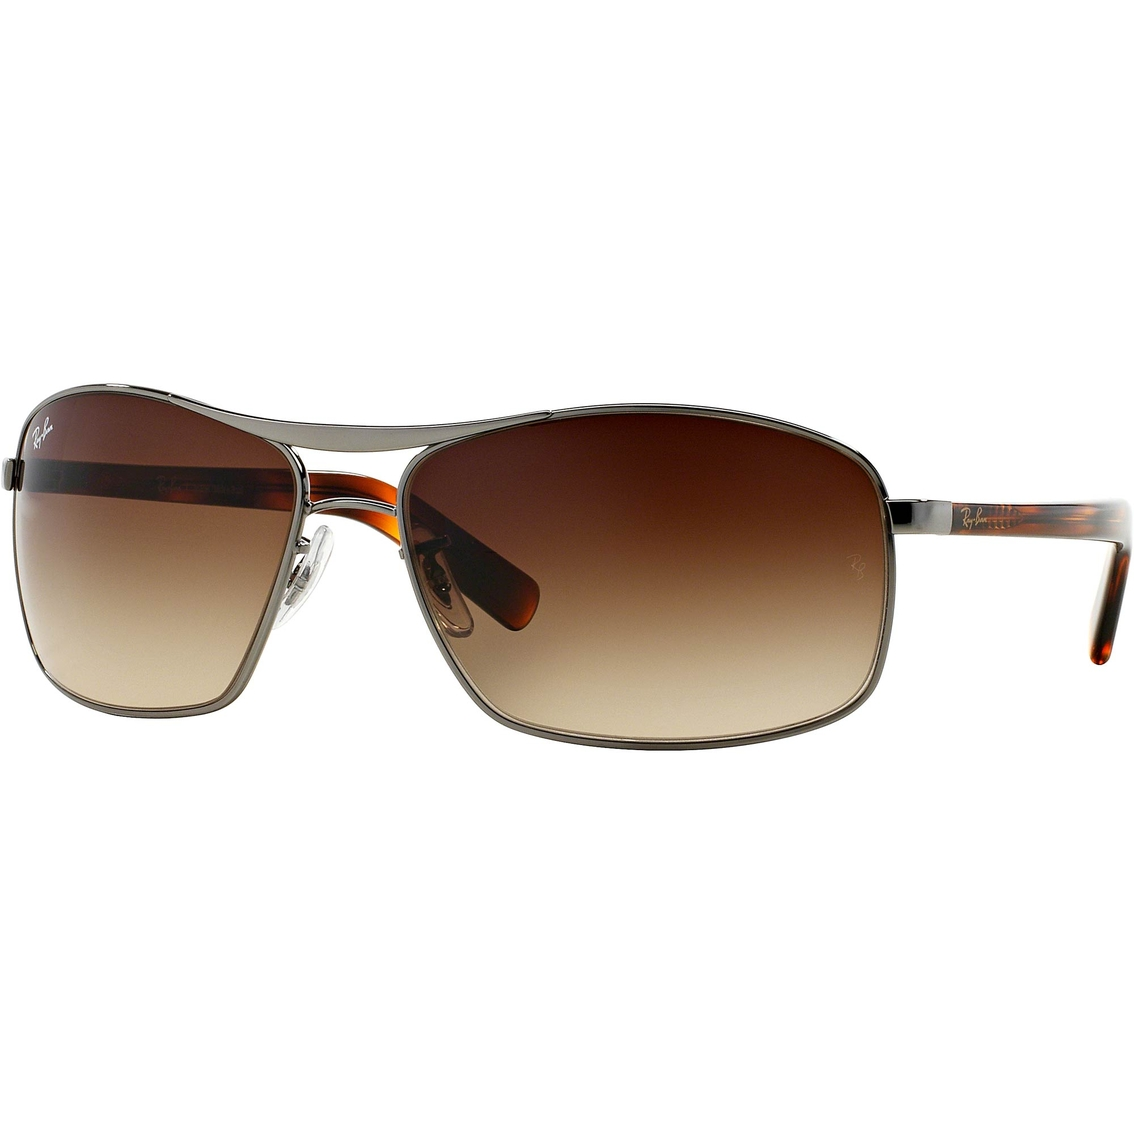 ray ban square sunglasses  Ray-ban Square Sunglasses